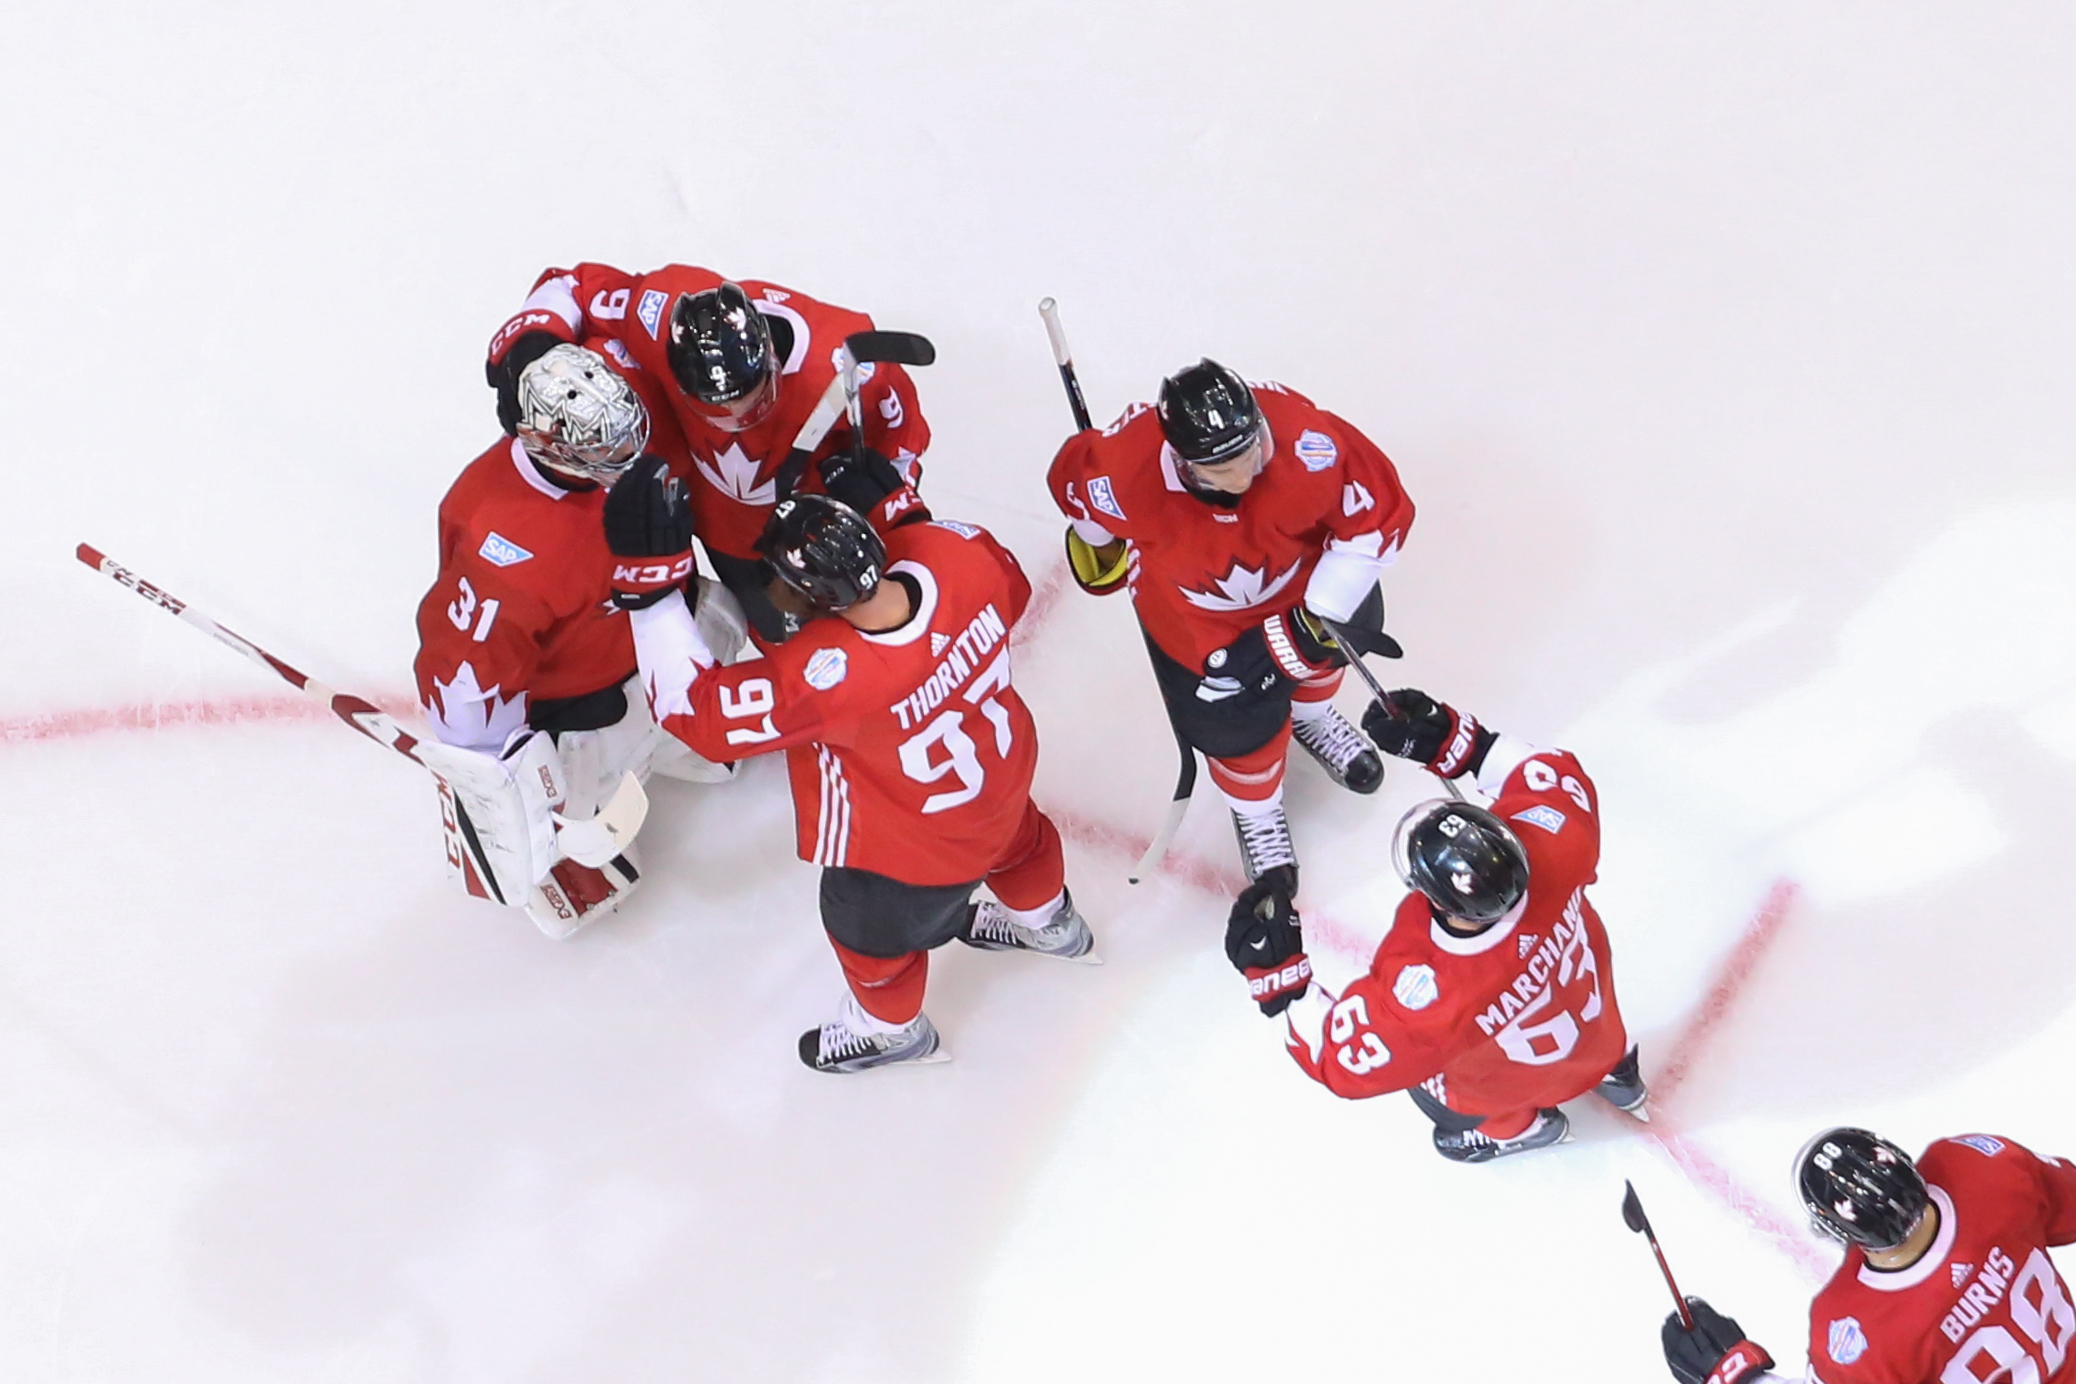 World Cup Of Hockey 2016 Final - Game One - Europe v Canada